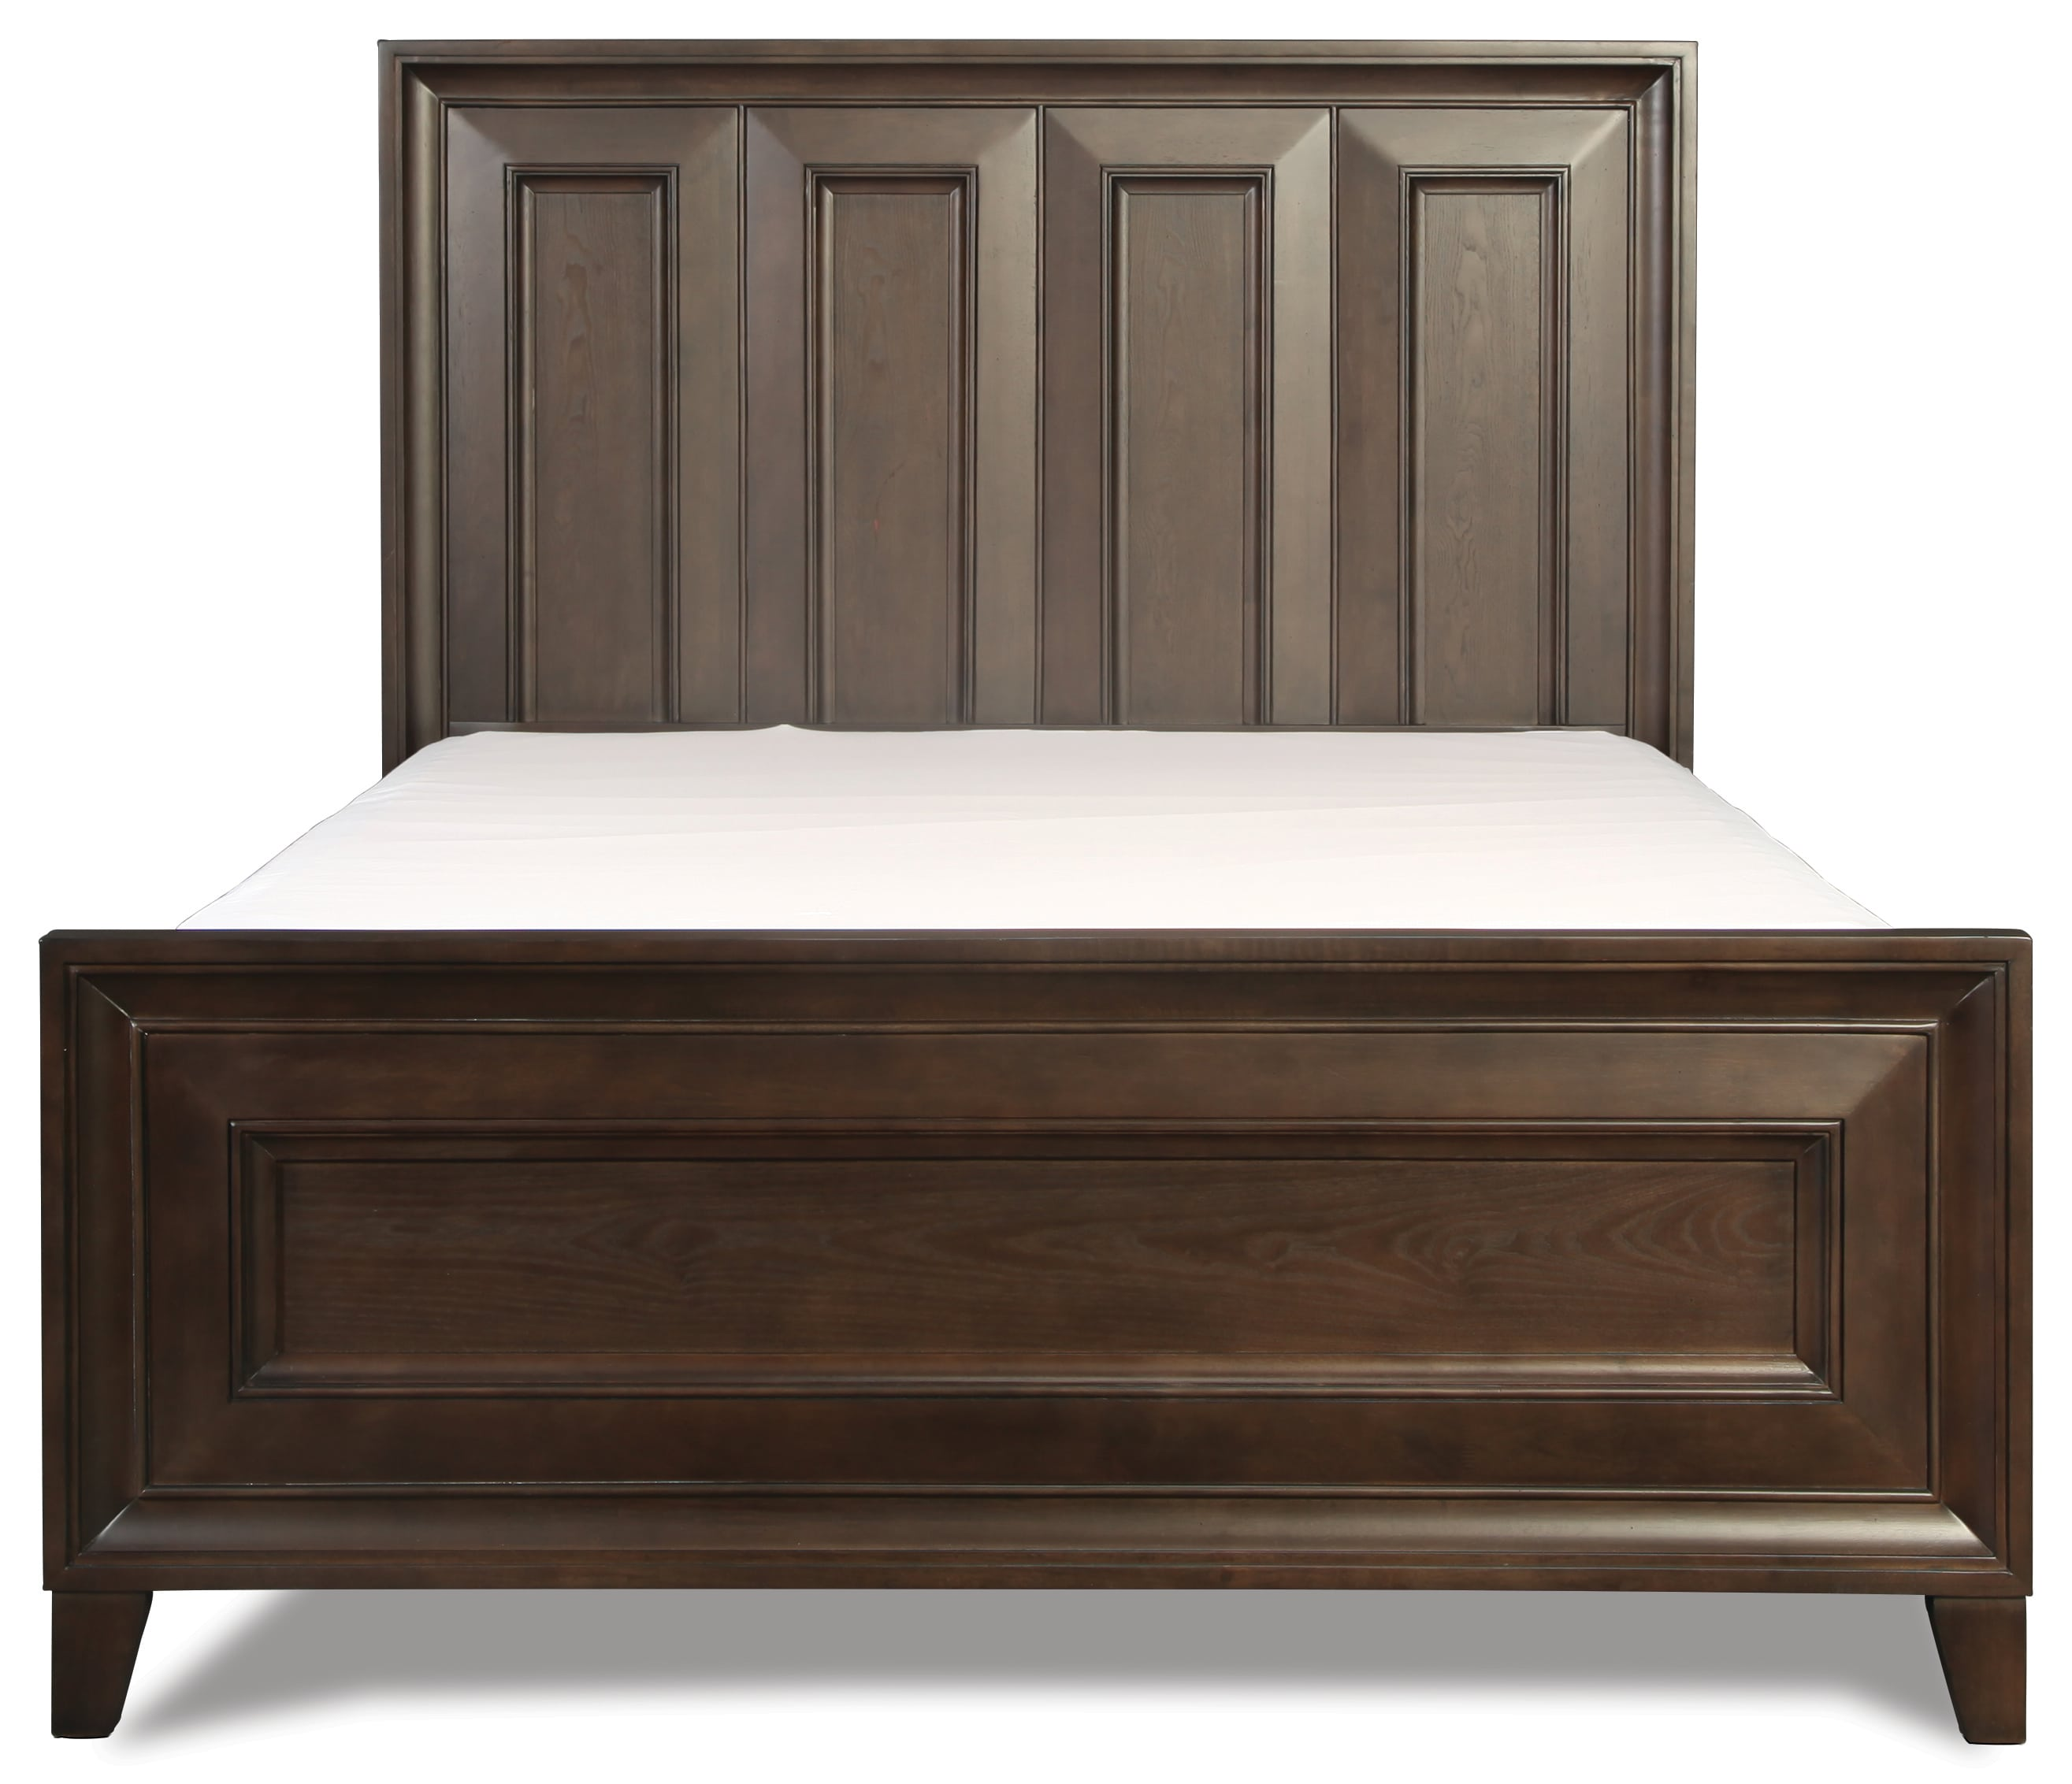 Murray Hill Queen Panel Bed